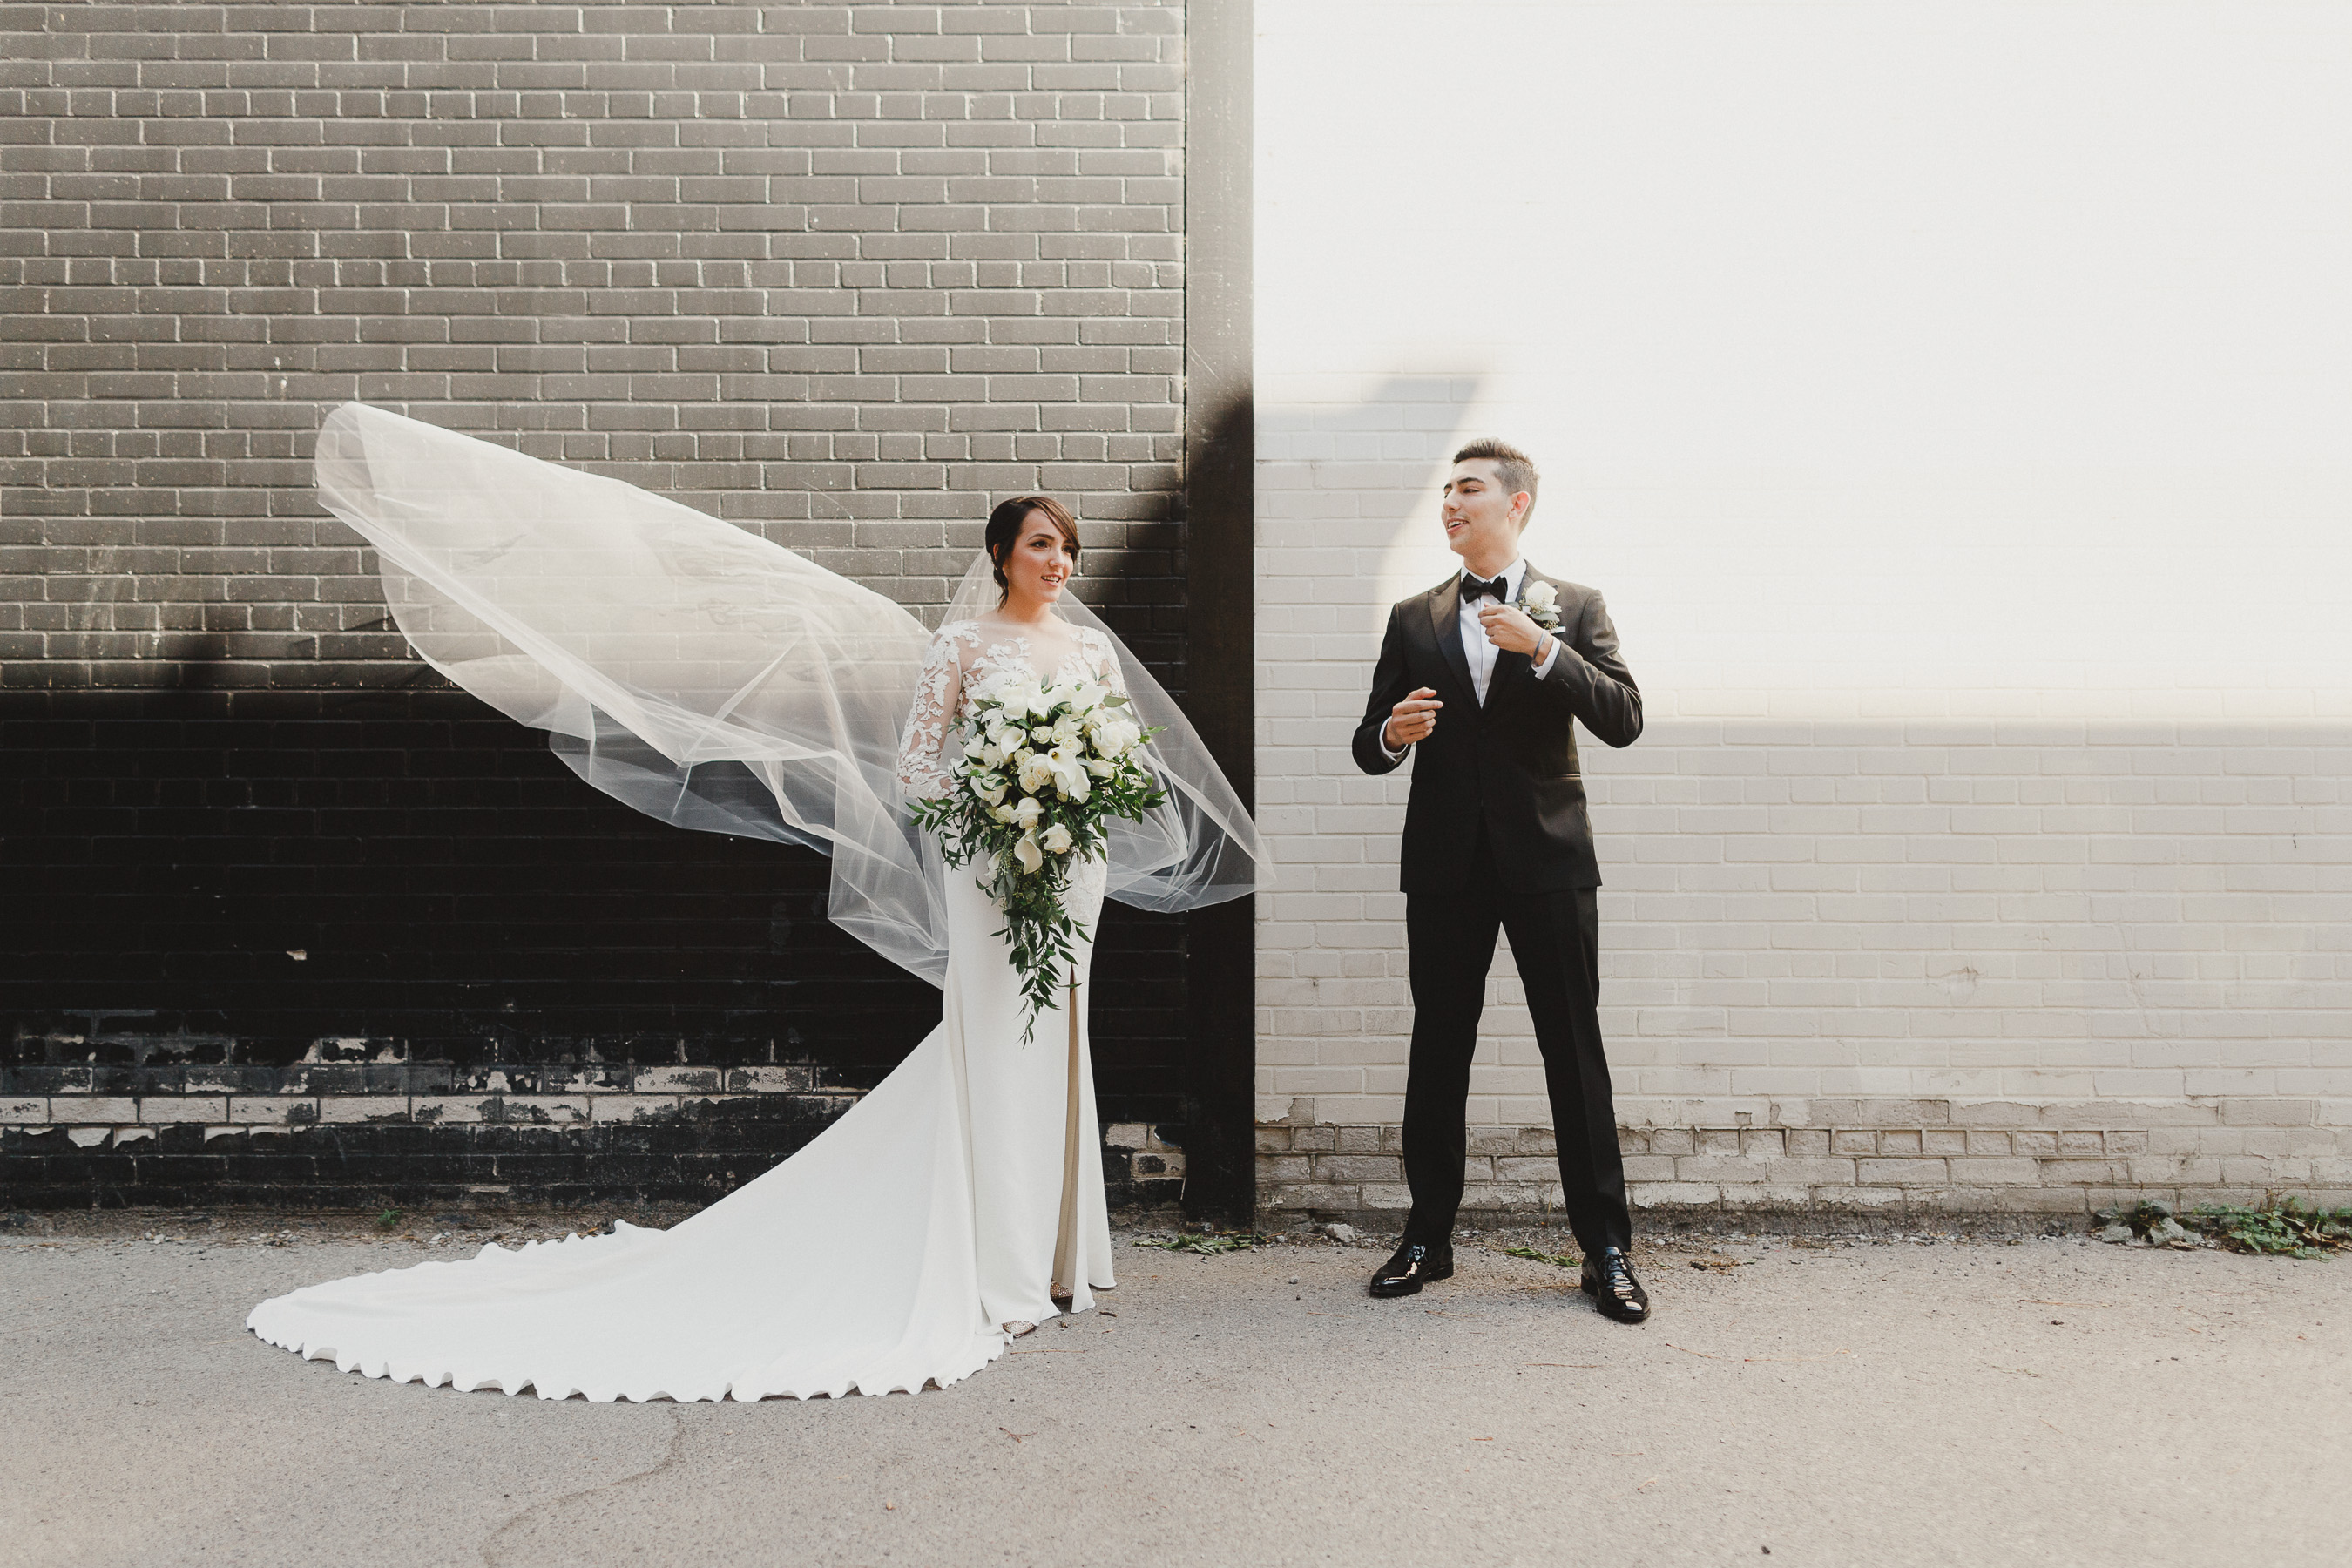 Wedding Pictures by Toronto Top Wedding Photographer Avangard Photography